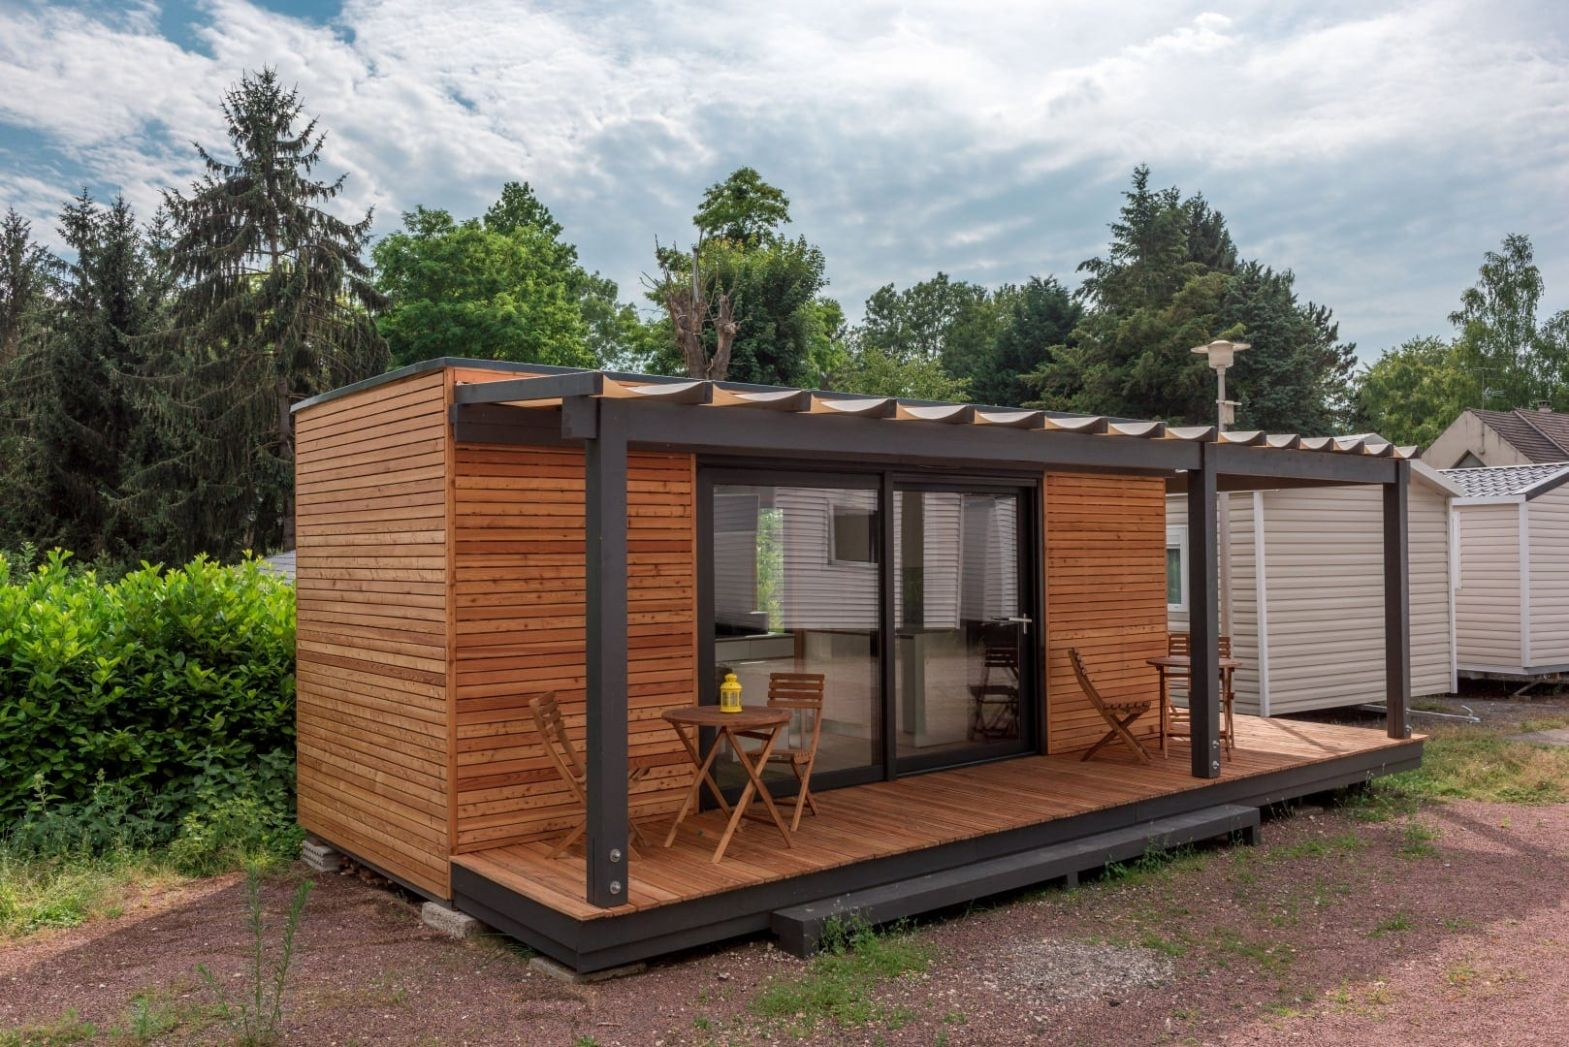 Modular Eco Tiny Houses on Wheels or on a Foundation